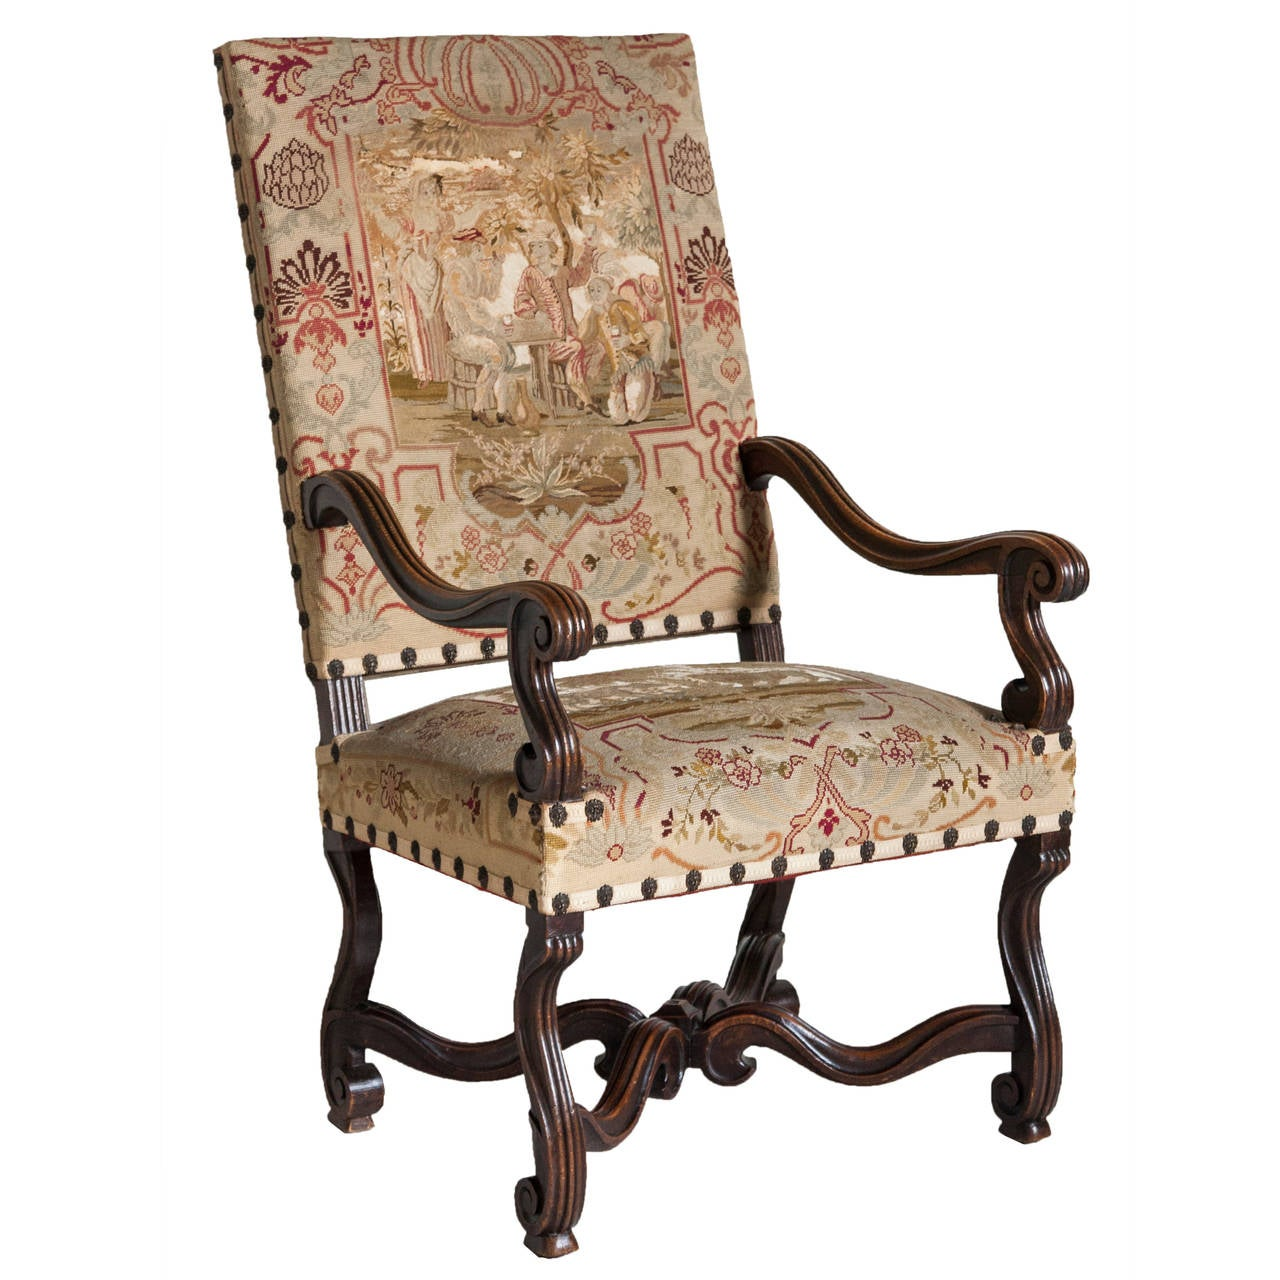 Louis Xiv Furniture Style: 19th Century French Louis XIV Style Armchair With Original